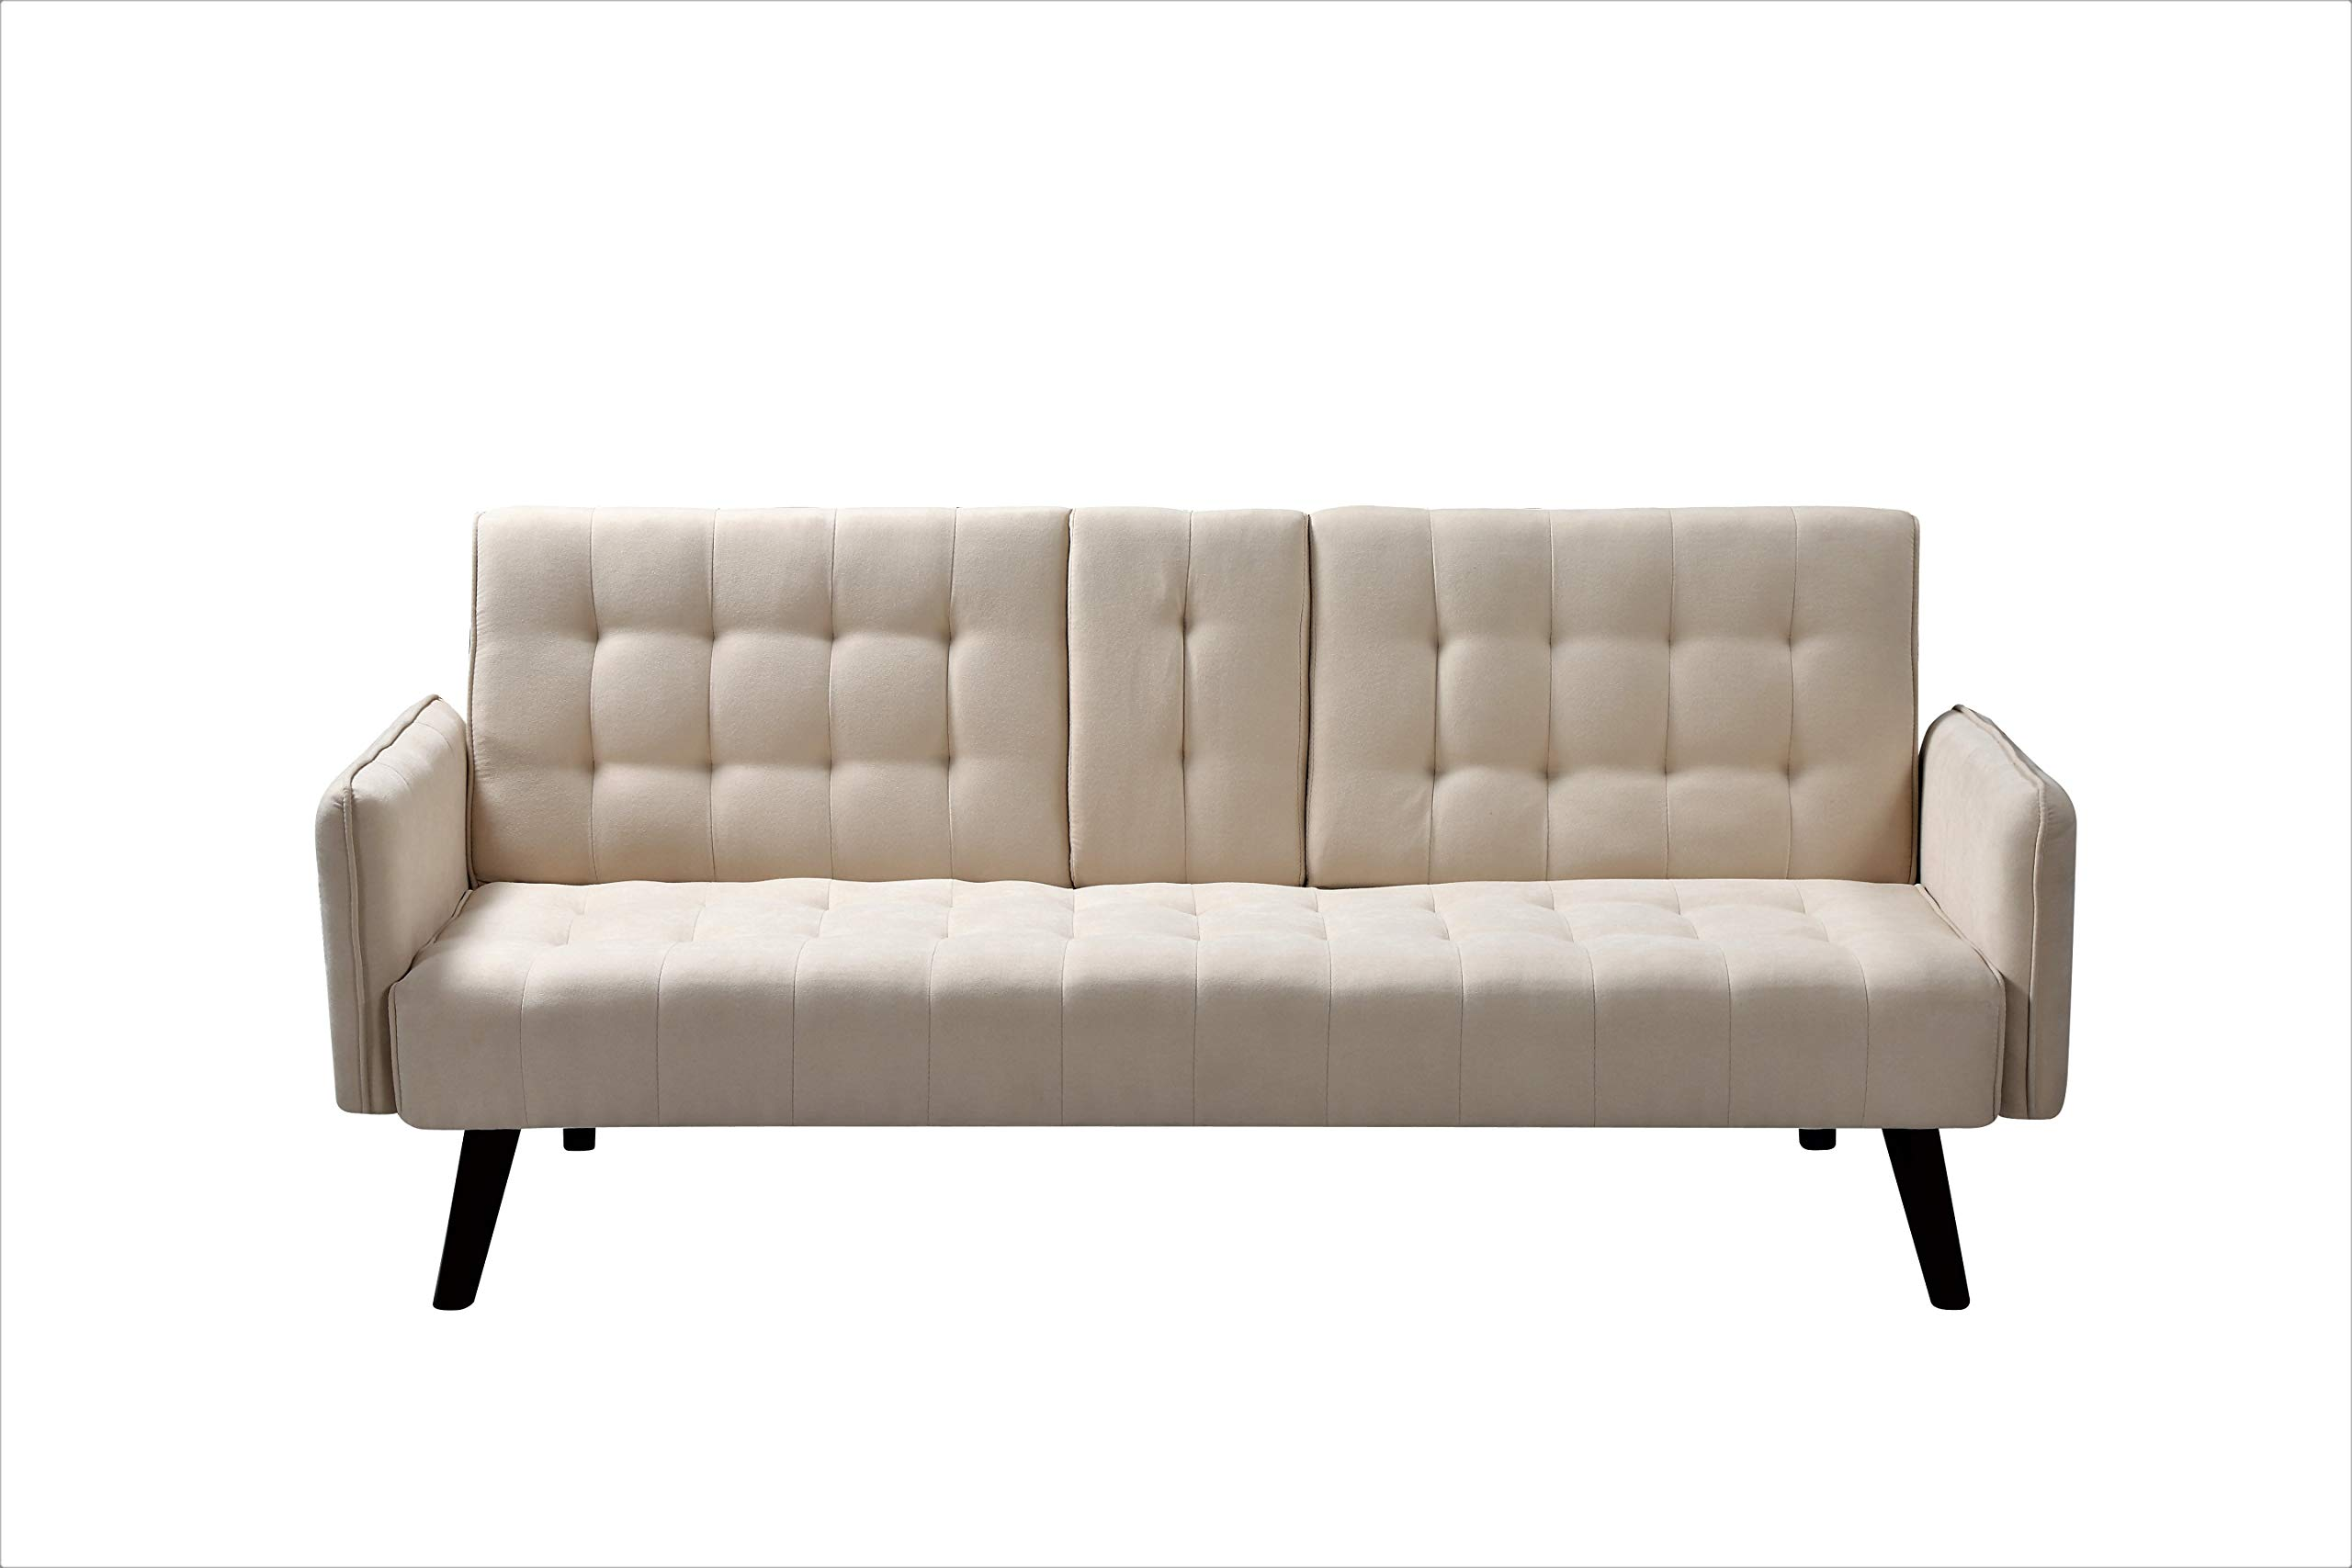 Container Furniture Direct SB9055 Hash Fabric Upholstered Living Room Sleeper Sofa, 72'', Beige by Container Furniture Direct